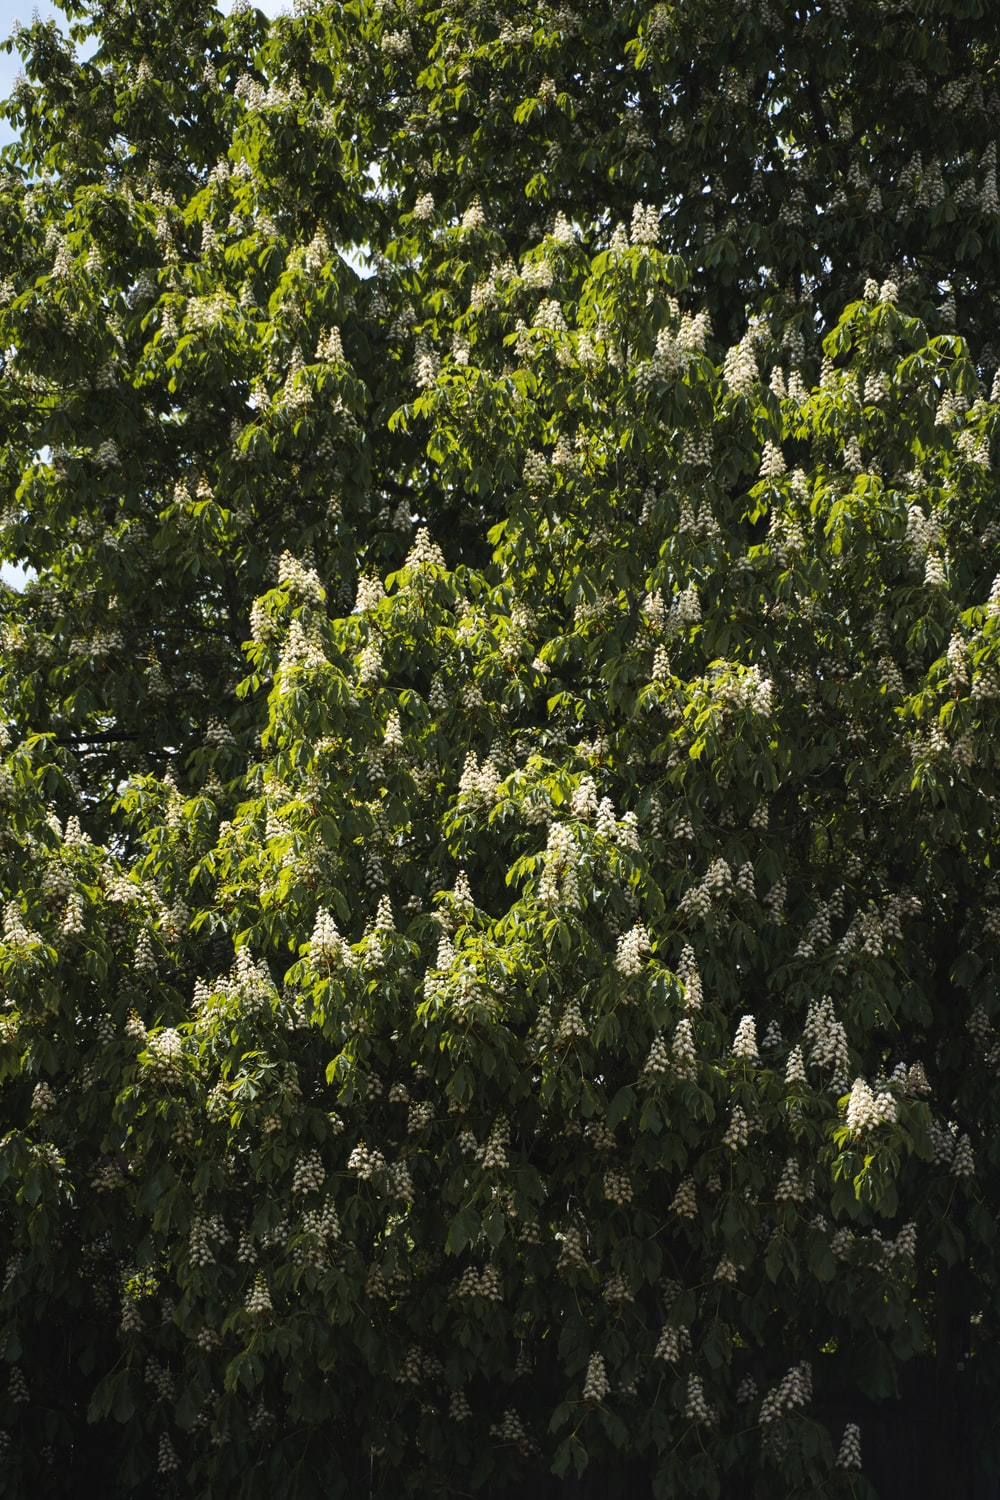 green tree with white flowers